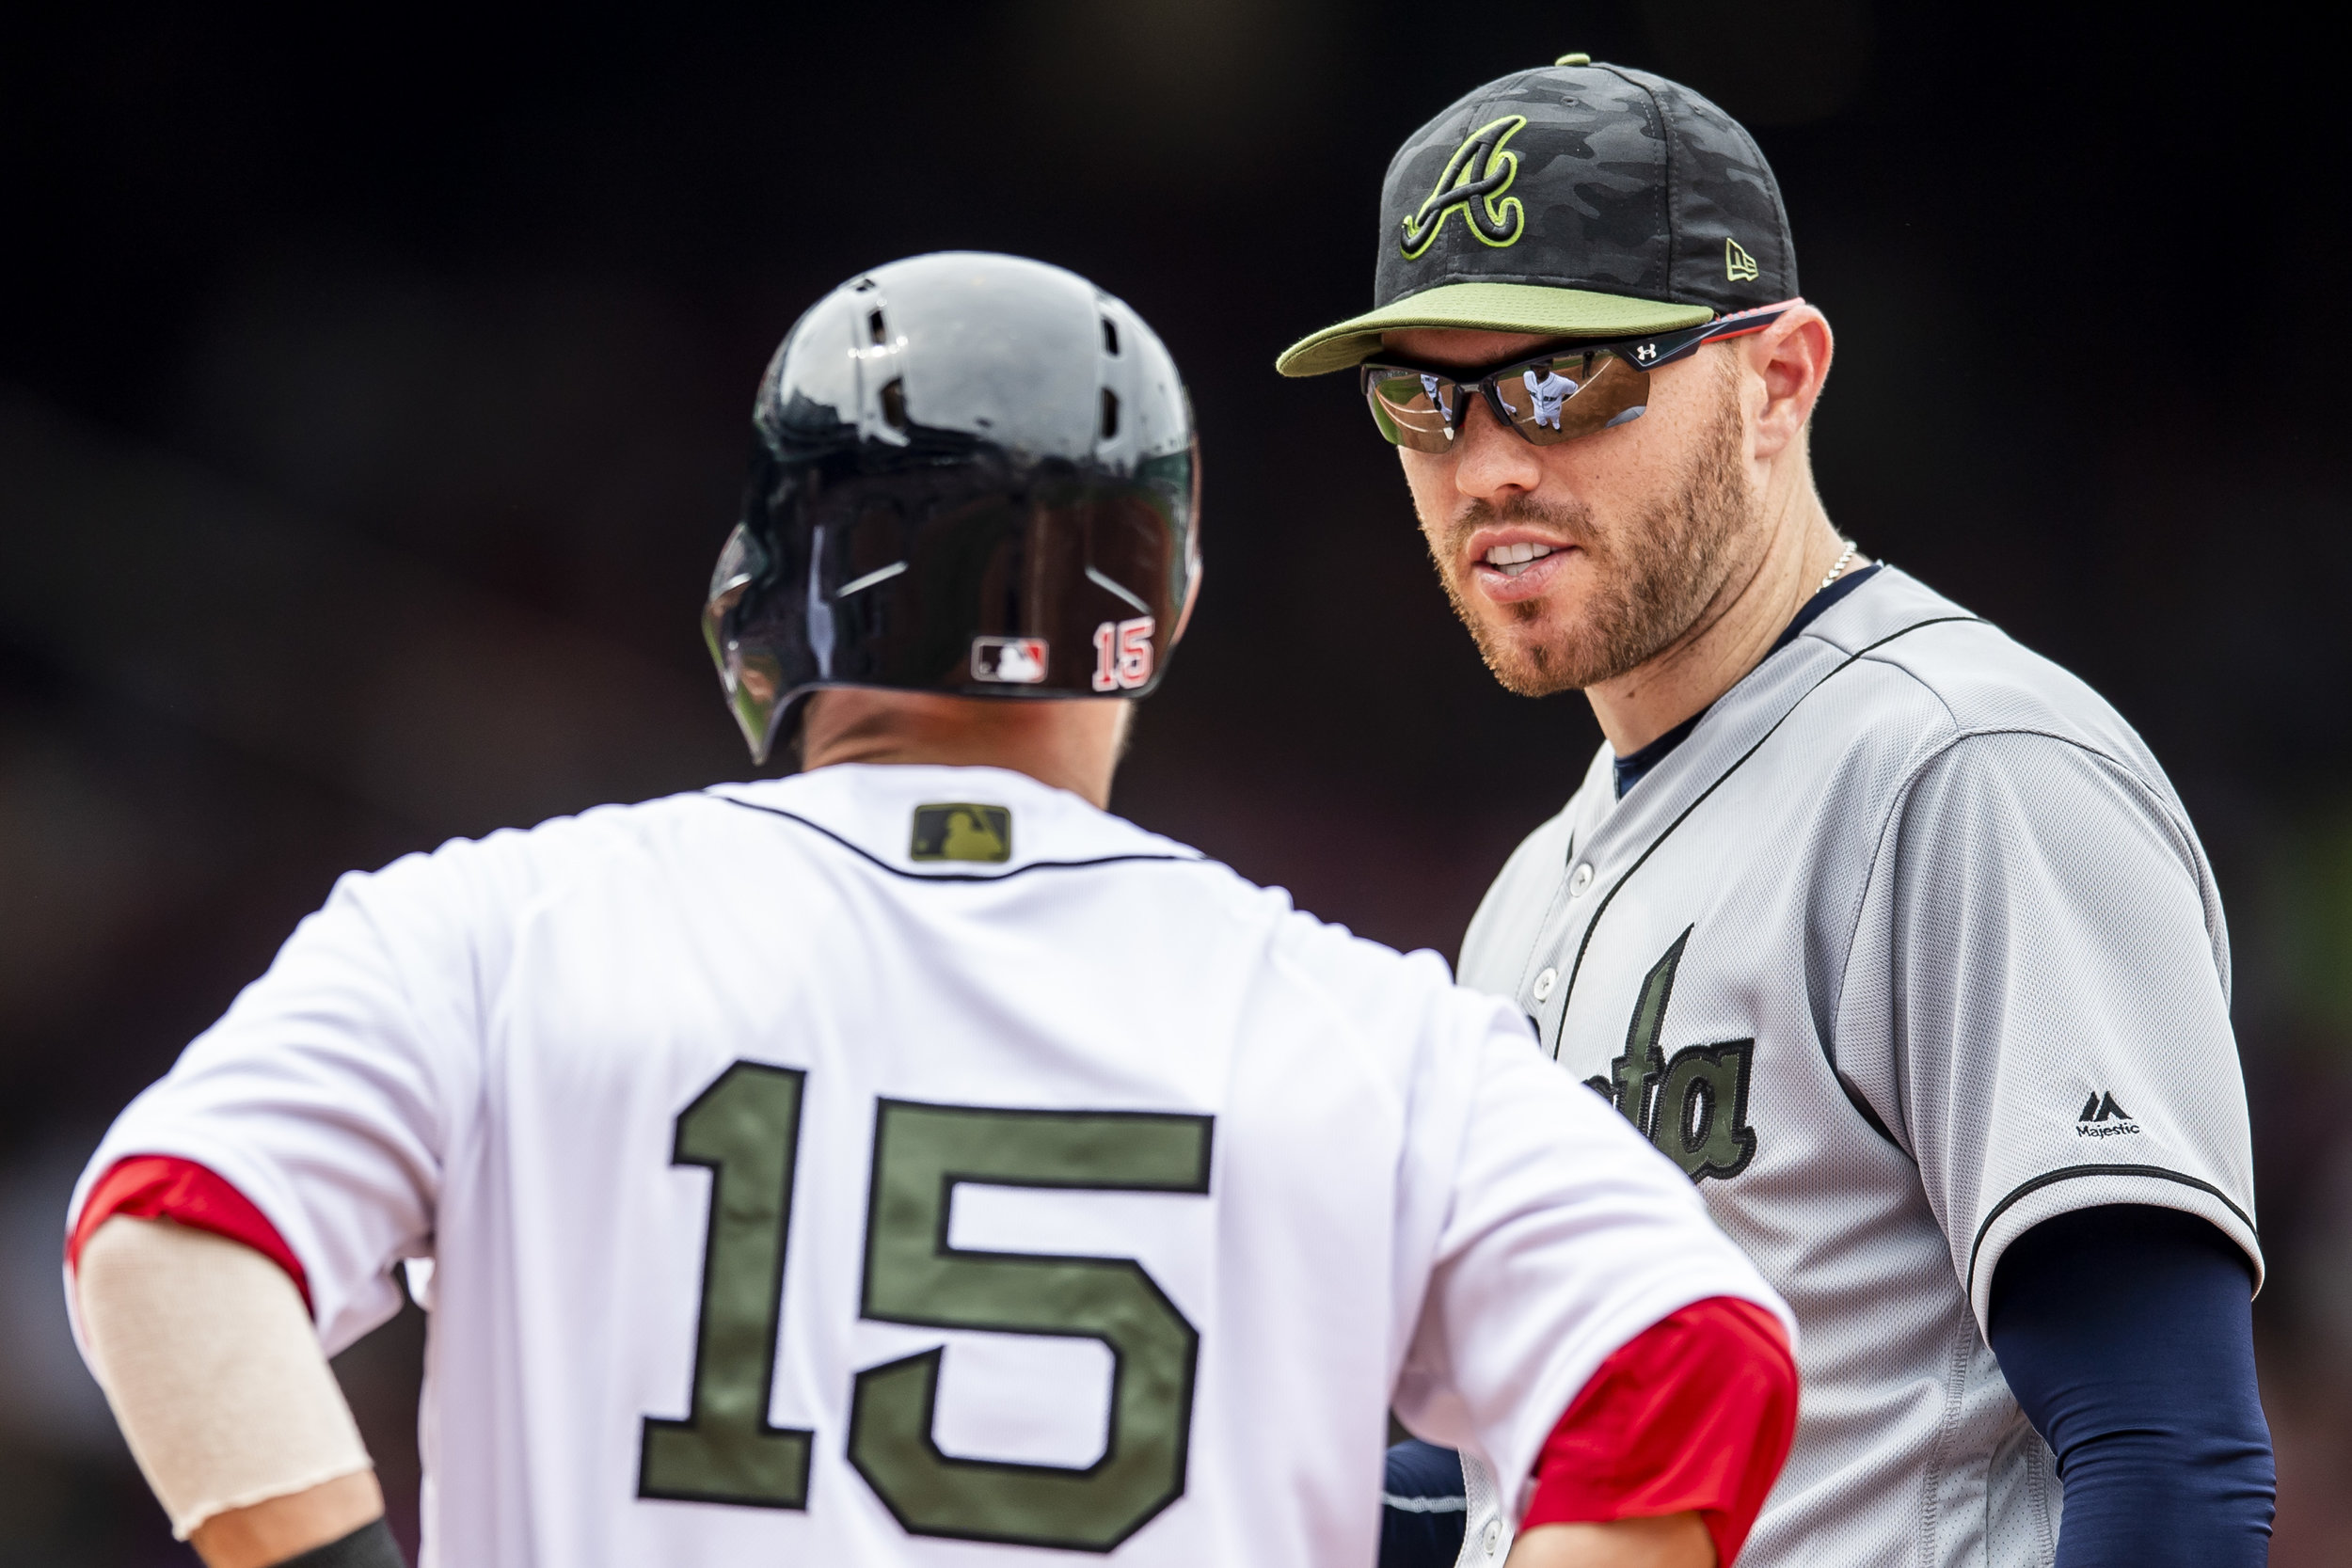 May 26, 2018, Boston, MA: Atlanta Braves first basemen Freddie Freeman chats with Boston Red Sox second basemen Dustin Pedroia as the Boston Red Sox face the Atlanta Braves at Fenway Park in Boston, Massachusetts on Saturday, May 26, 2018. (Photo by Matthew Thomas/Boston Red Sox)